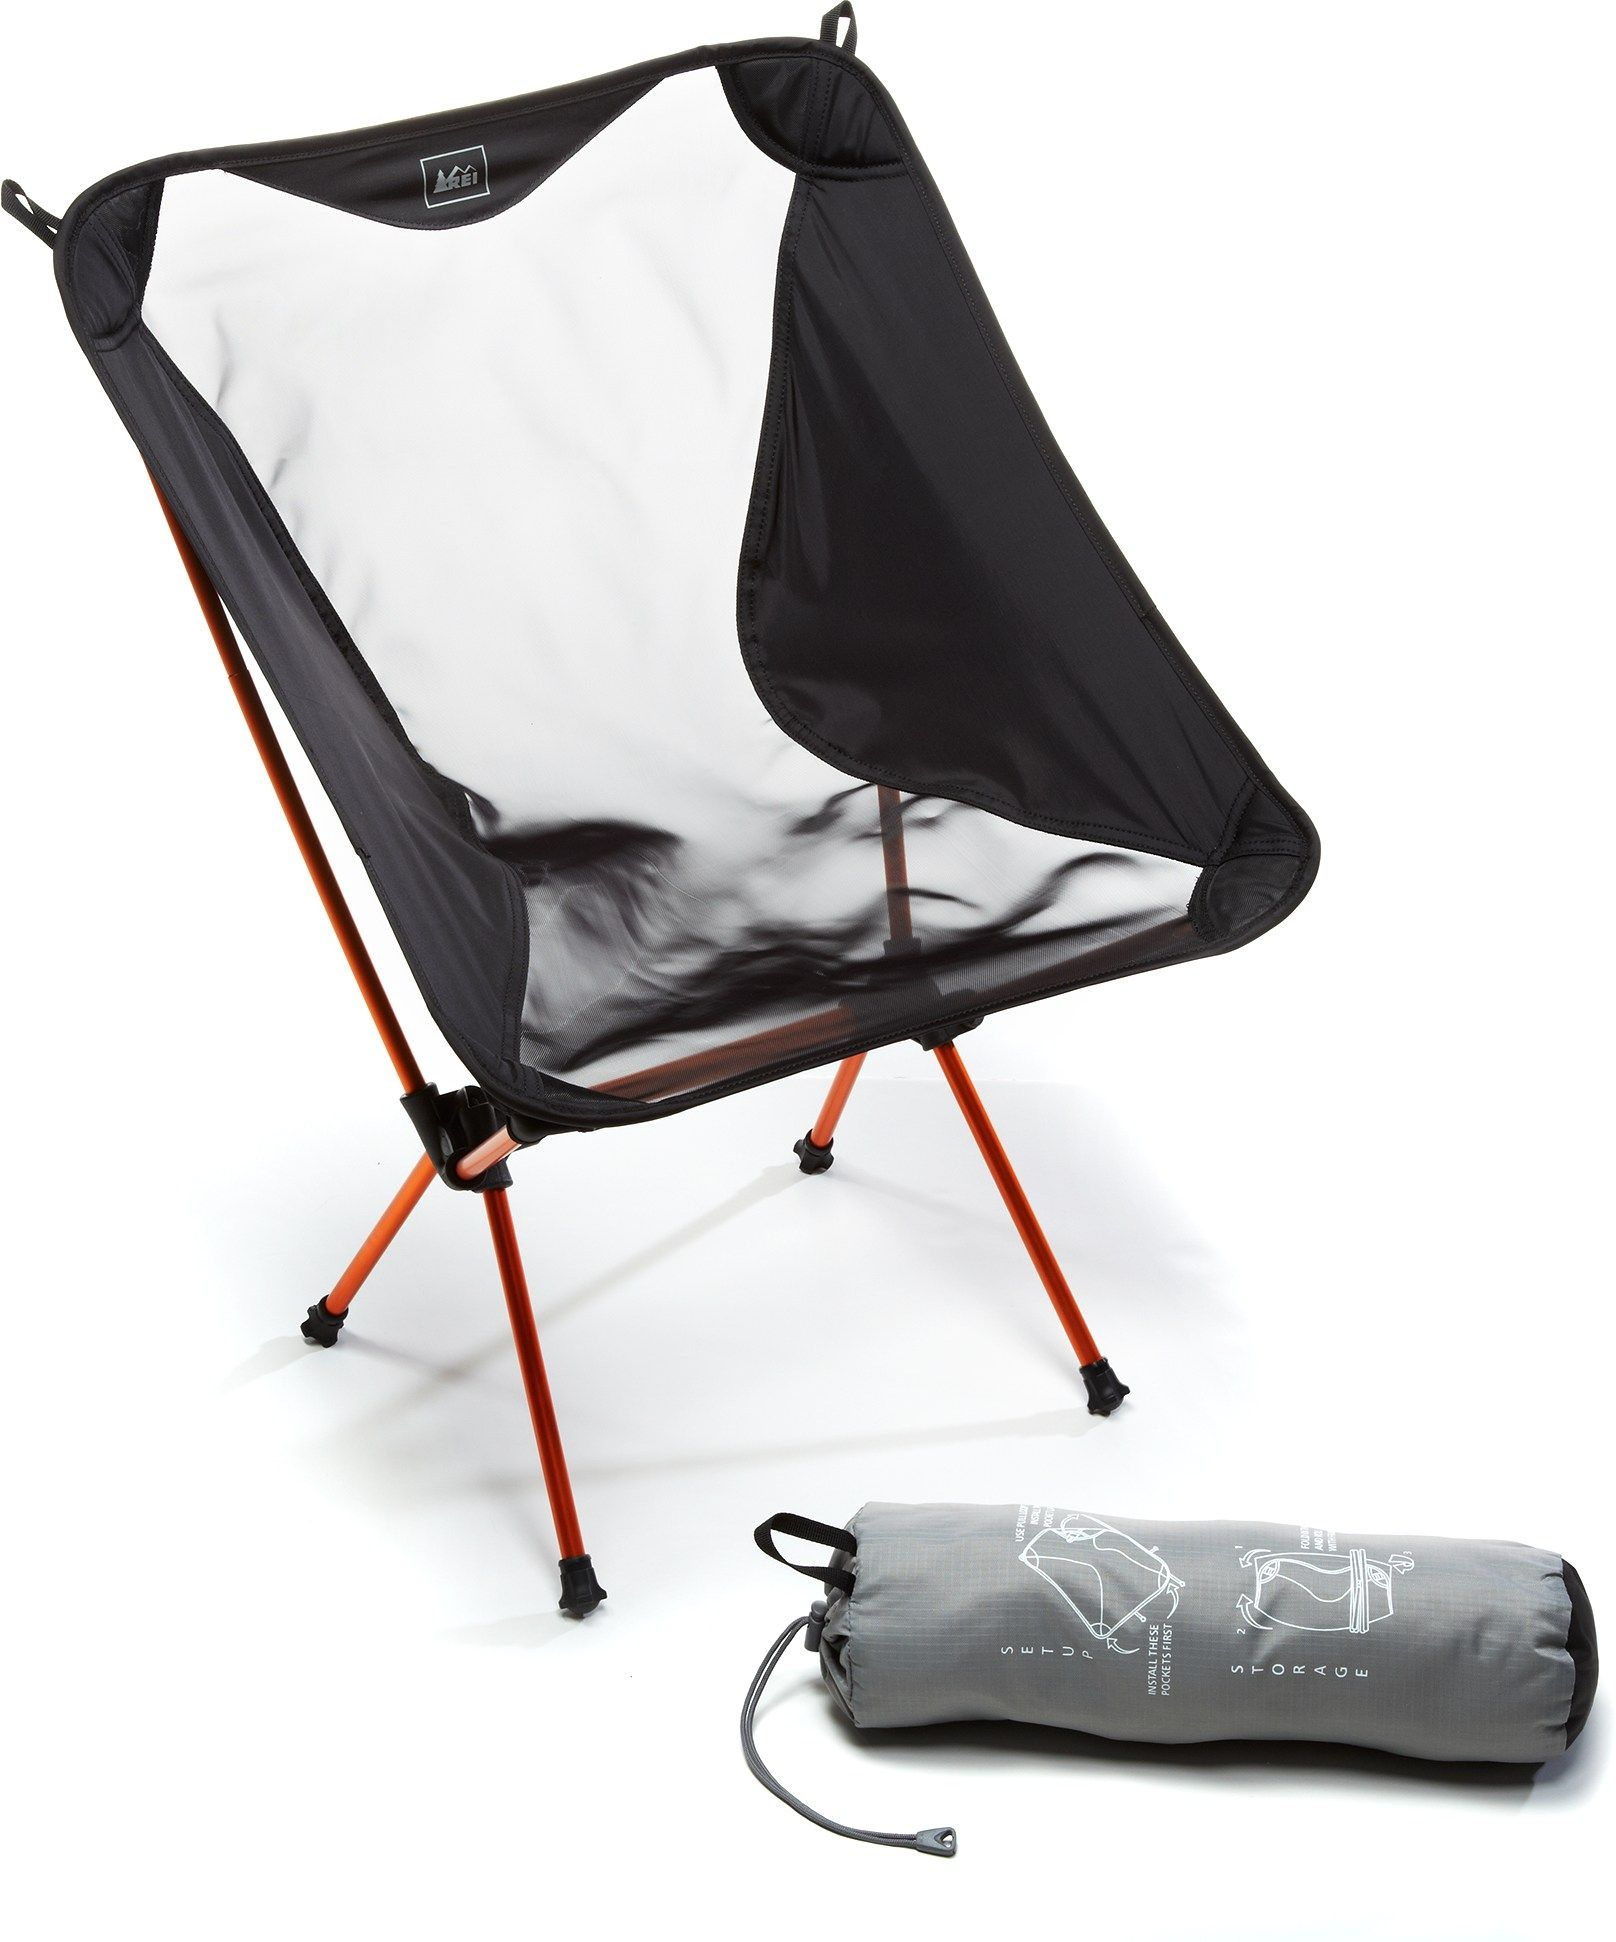 Carry comfort along on your next backpacking trip with the REI Trail Flex Lite chair.  sc 1 st  Pinterest : rei zero gravity chair - Cheerinfomania.Com